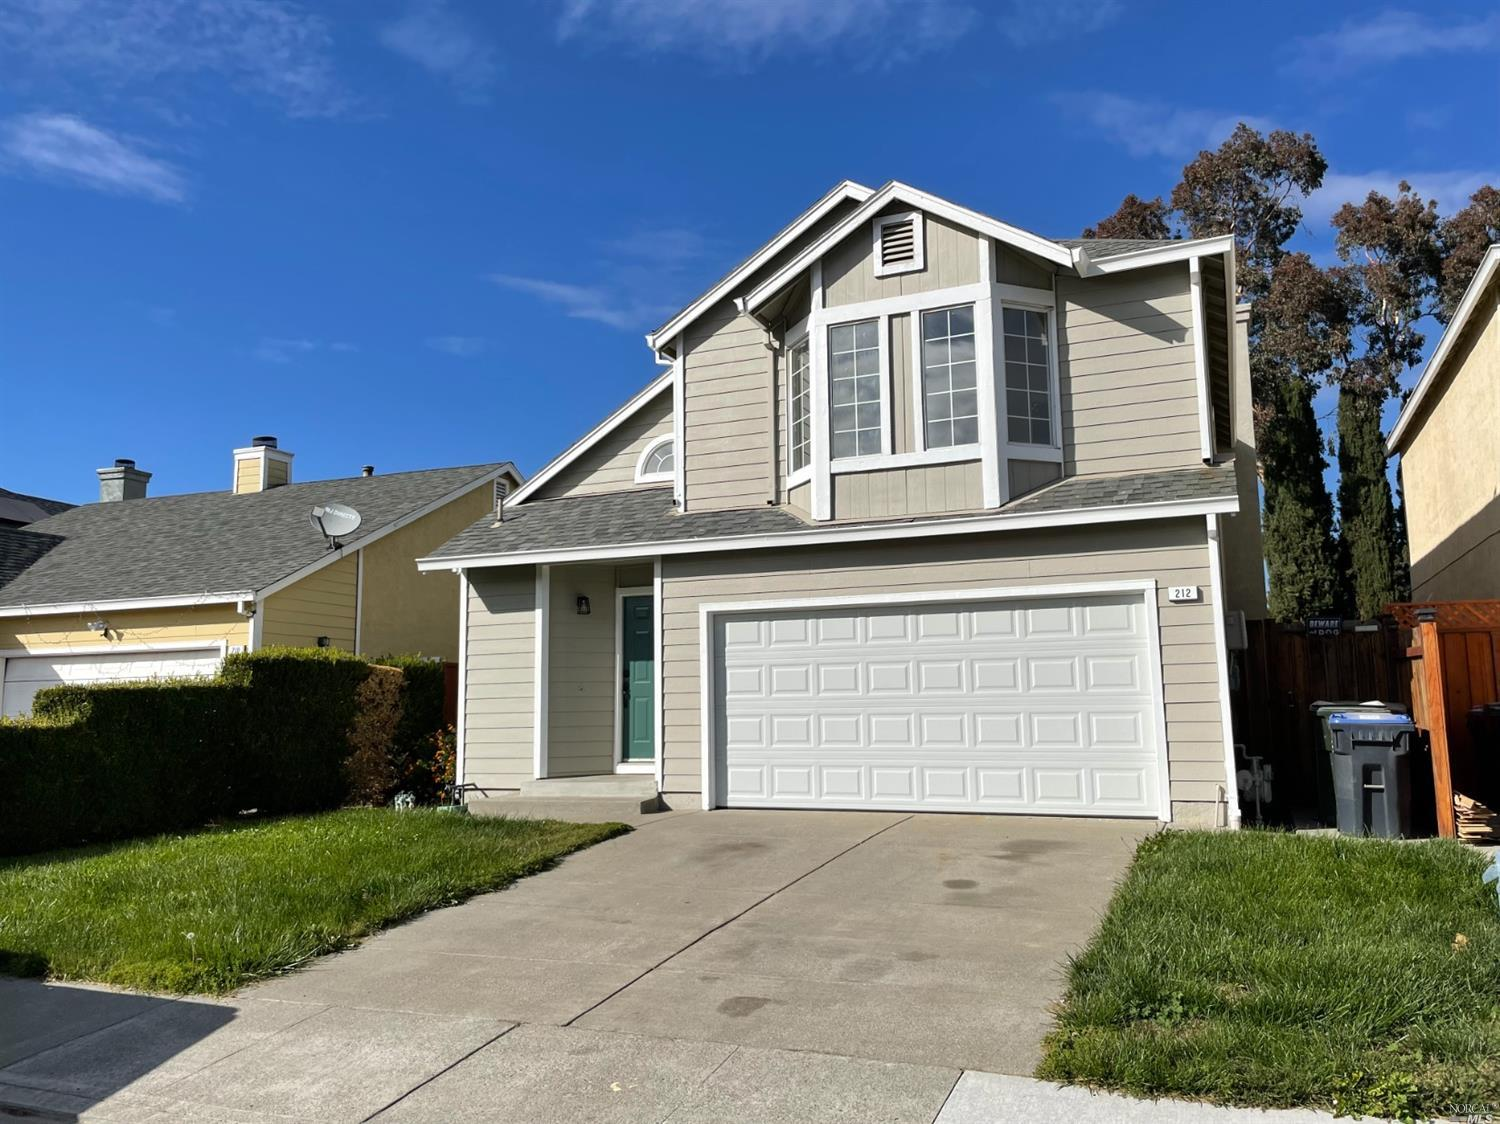 Photo of 212 Clearbrook Court, Suisun City, CA 94585